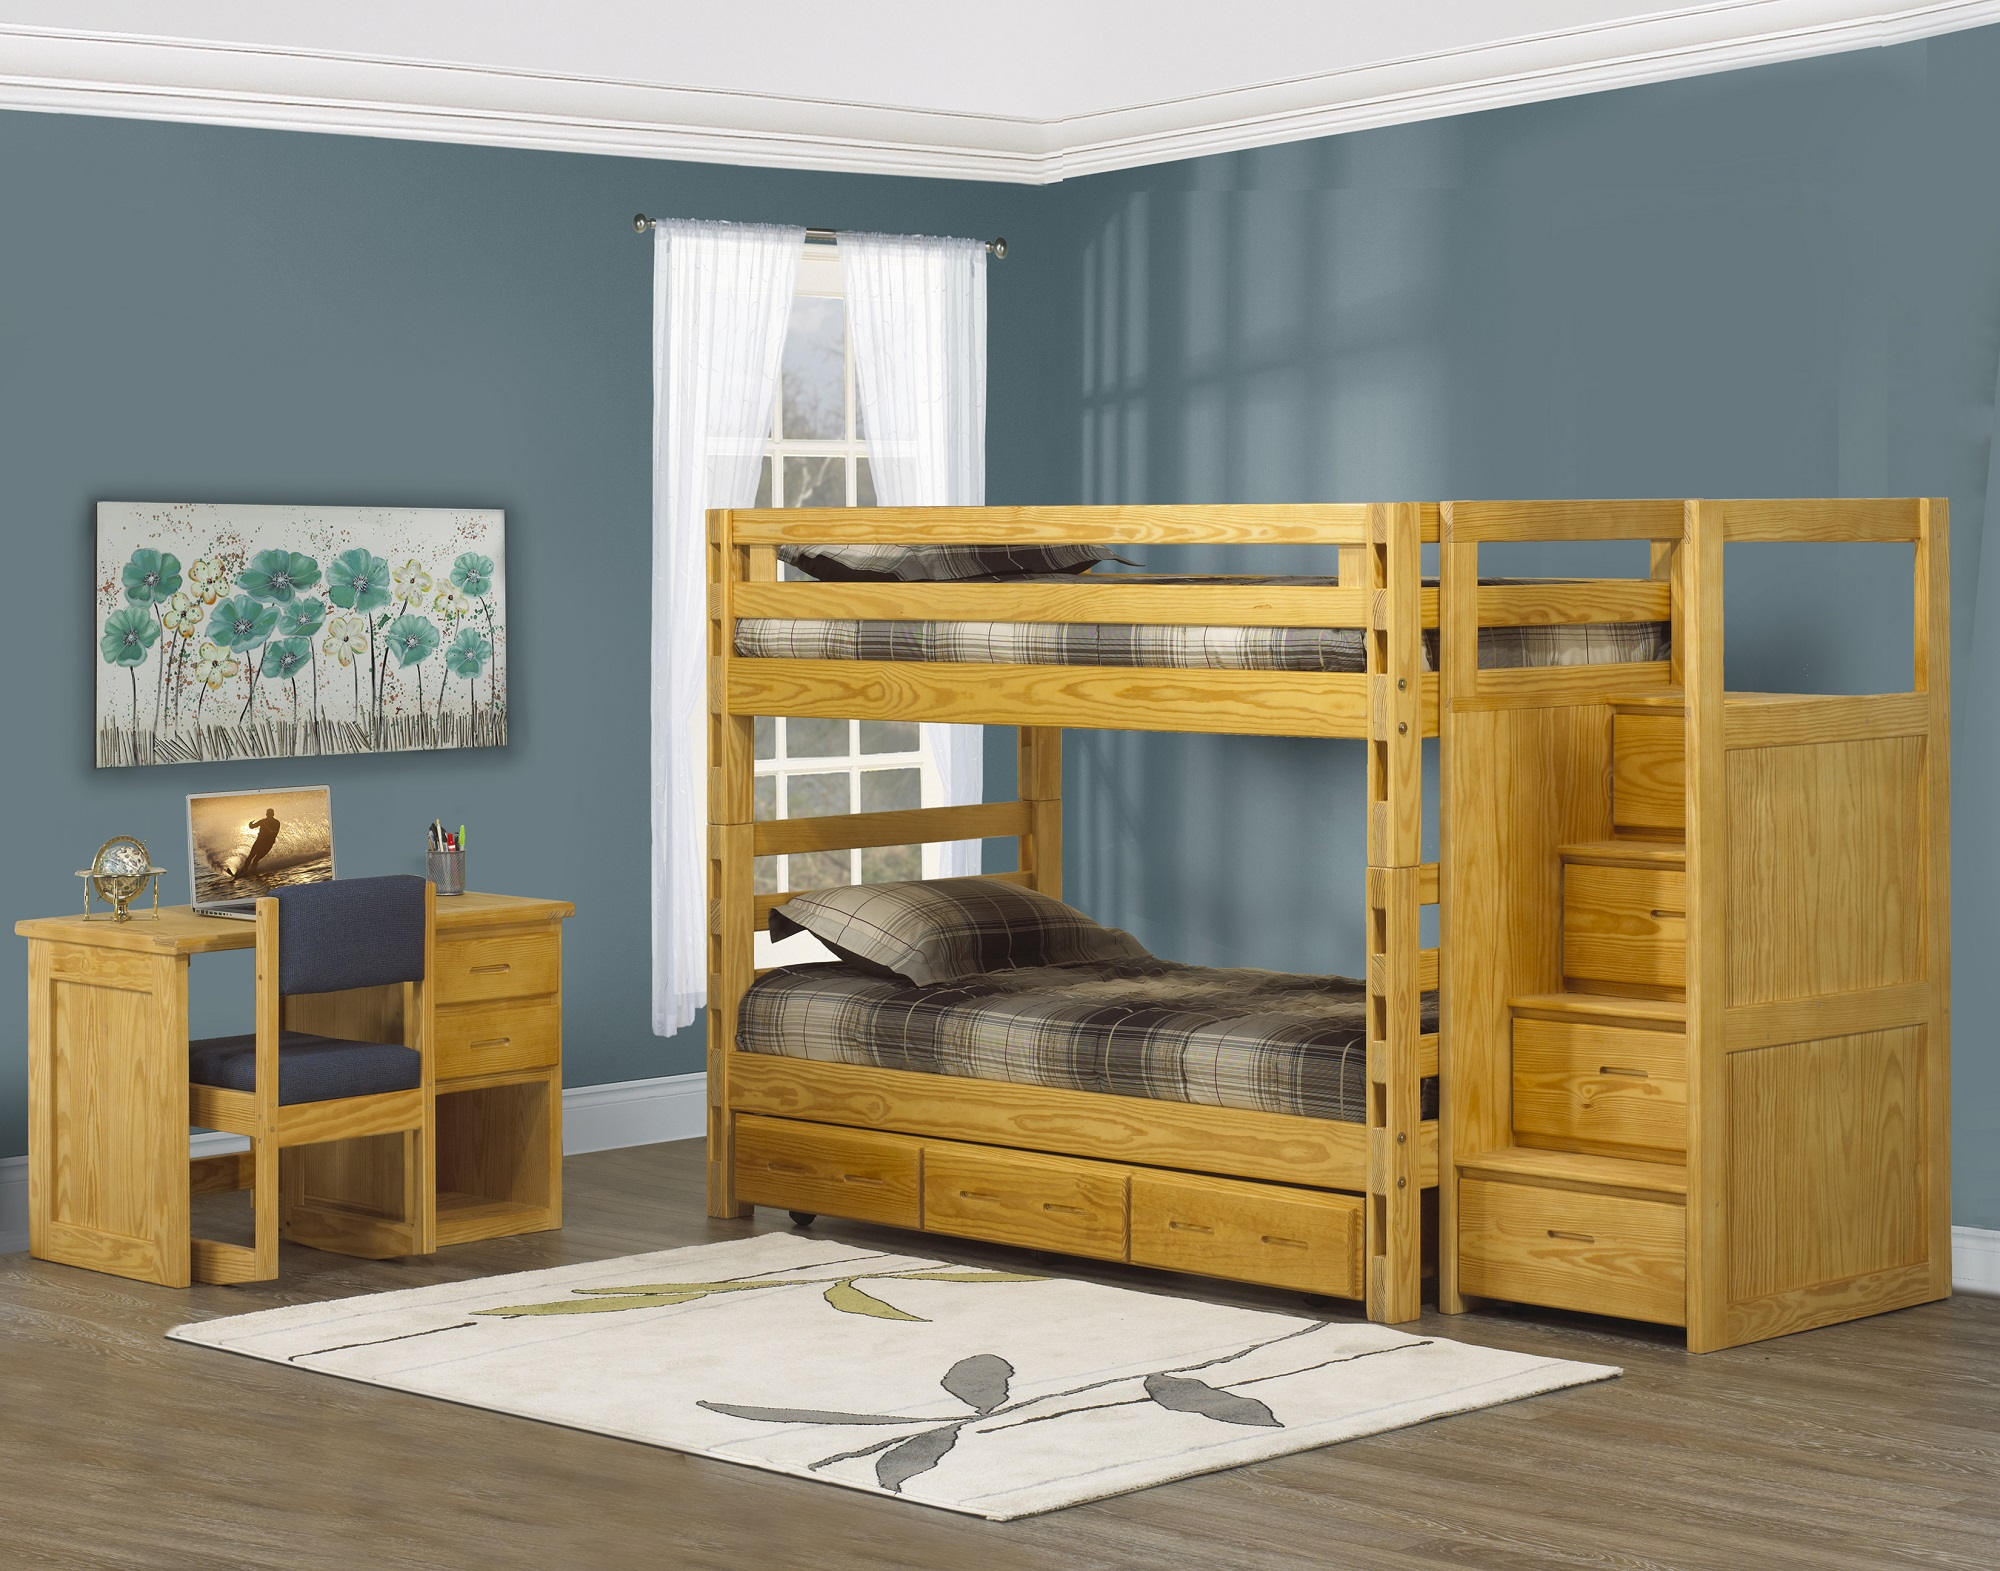 Bunkbed in Classic Fiinish by Crate Designs